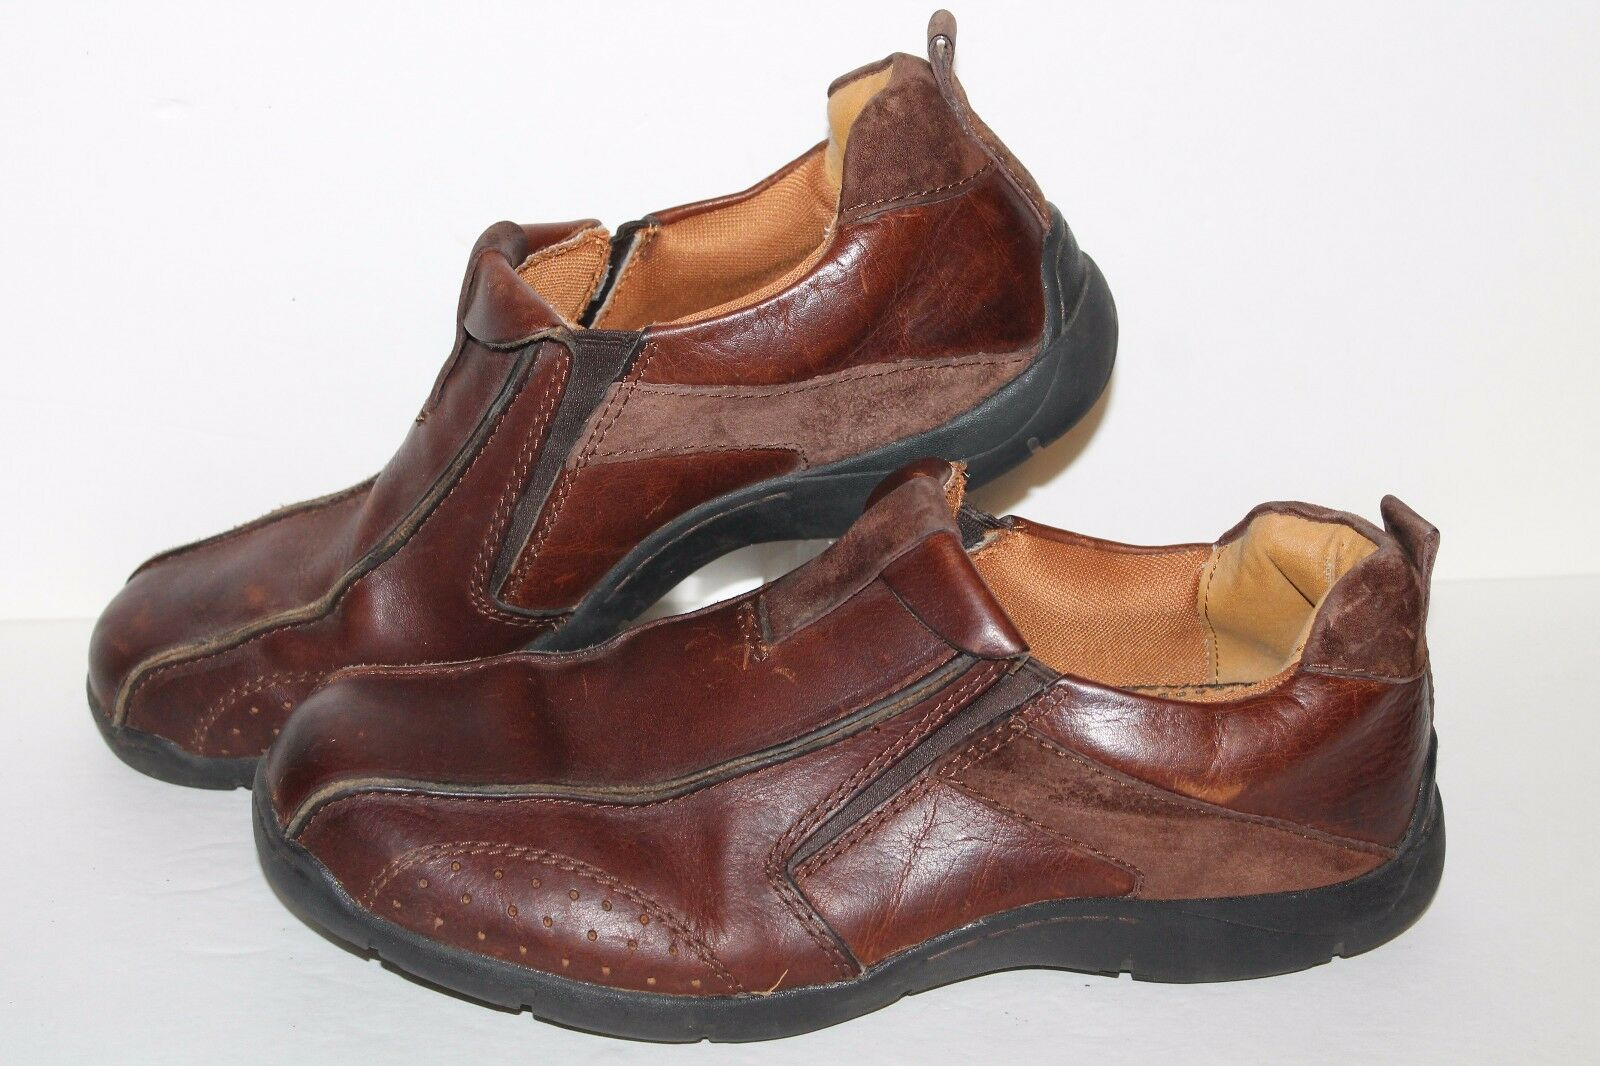 Skechers Saddleback Casual Shoes, Brown, Leather, Men's US Size 12